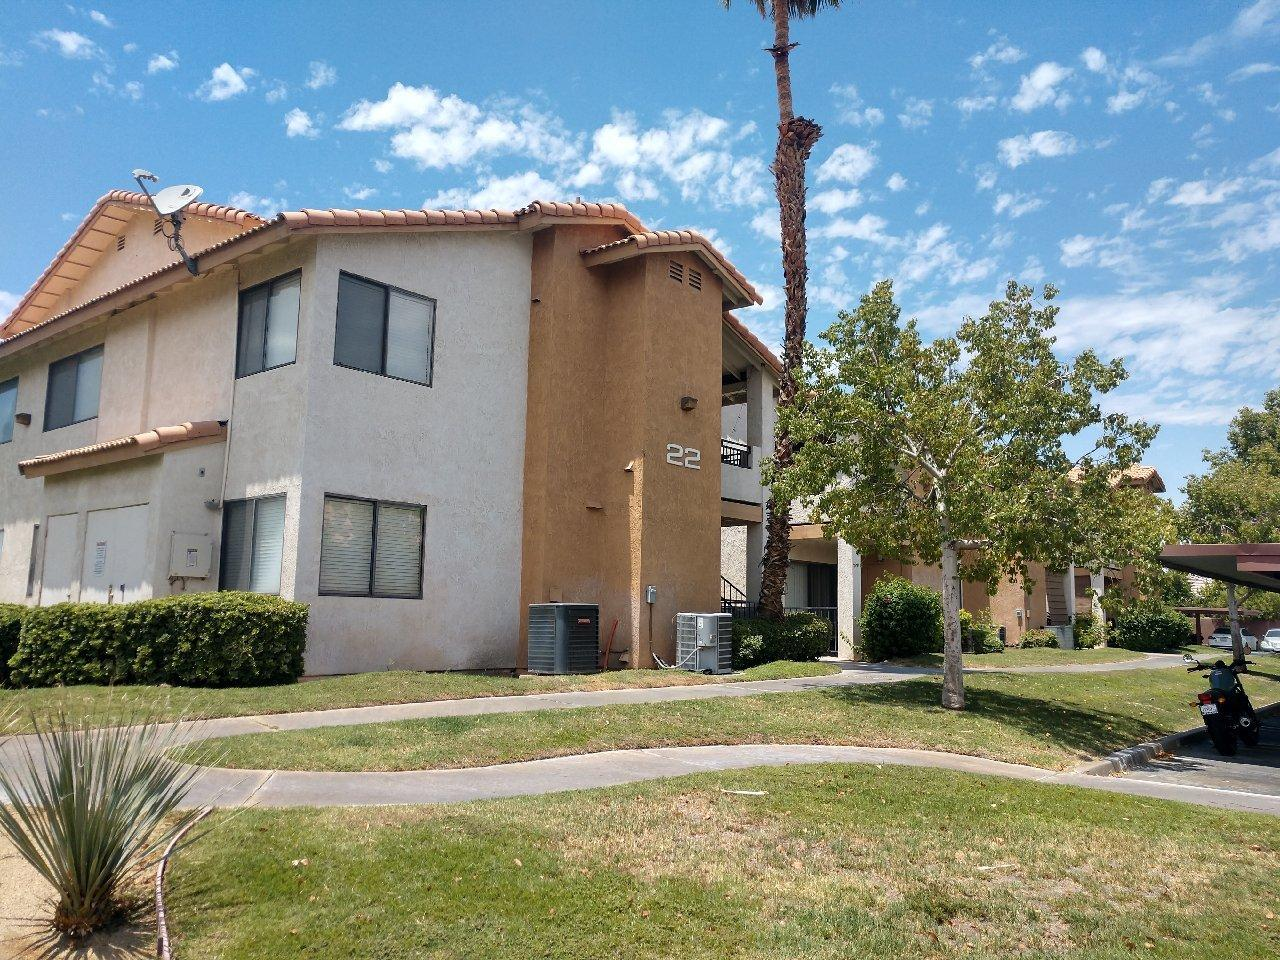 Back on the market!  Great value, great location!  Convenient ground floor, 1 bedroom/1 bath condo in Saddleback!  This unit features tile flooring, updated kitchen, walk-in closet, covered patio, washer/dryer and no stairs to climb!  Saddleback is a gated development with pools, tennis, reasonable HOA dues, located near shopping and convenient to the 10 fwy.  Makes an ideal vacation getaway or full time residence!